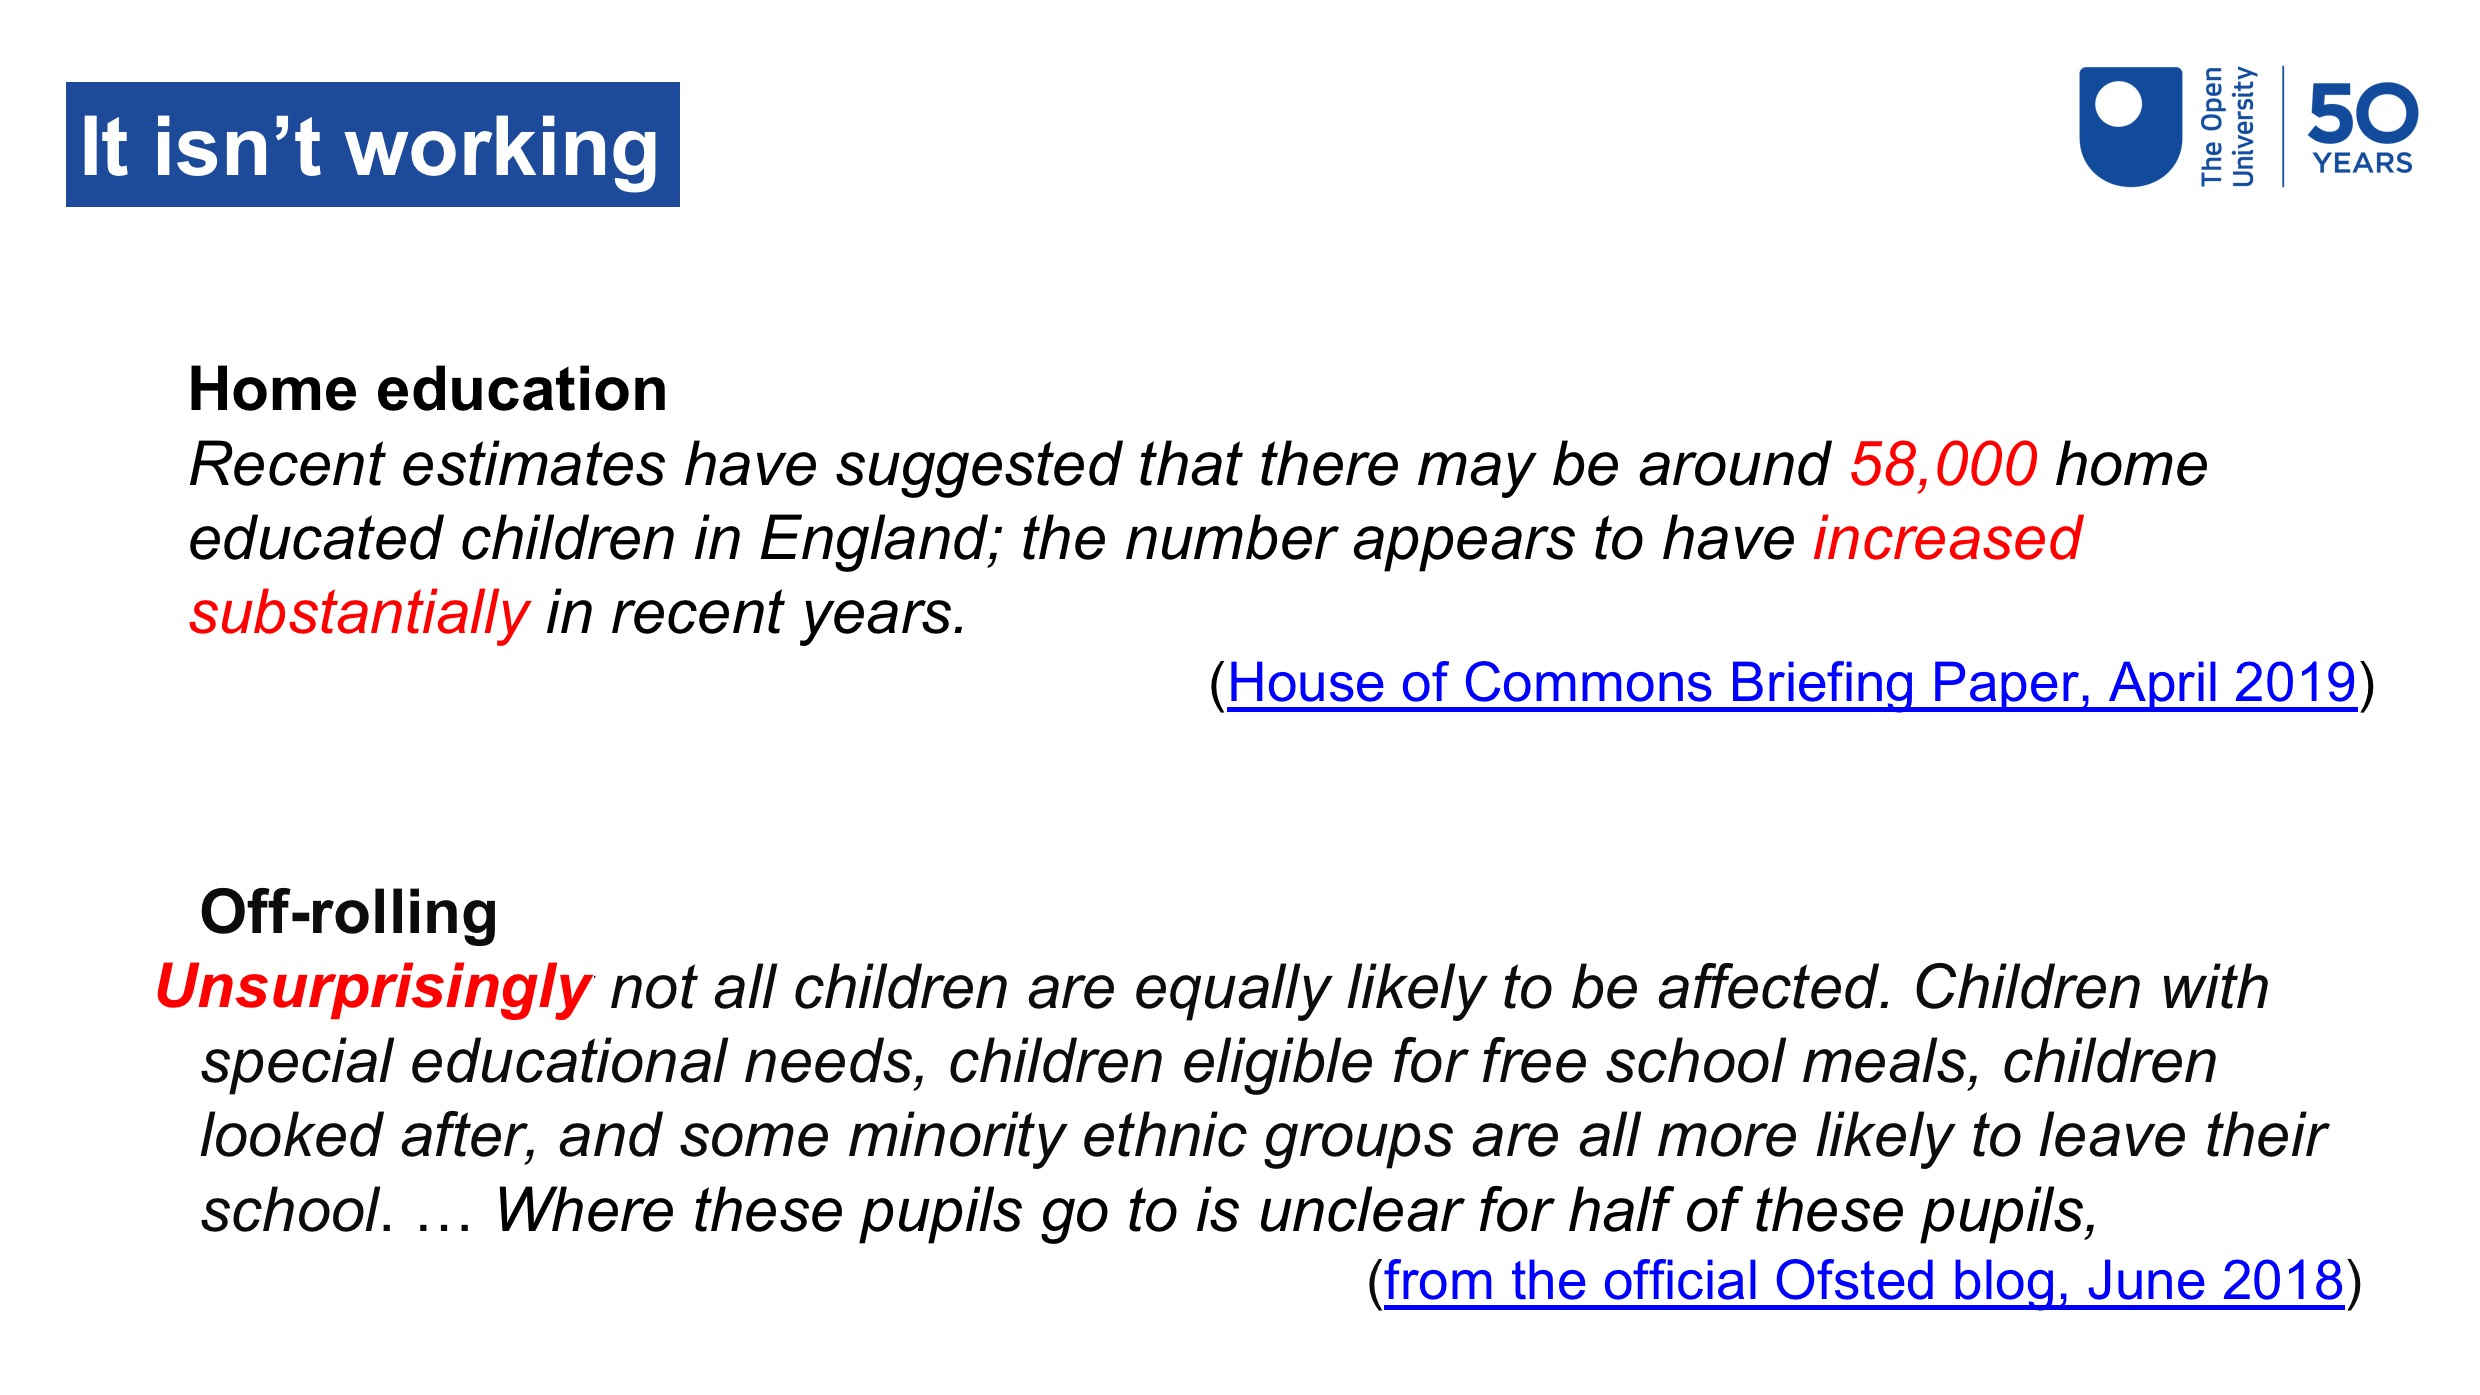 Increase in the level of homeschooling and evidence that not all children are treated equally by schools